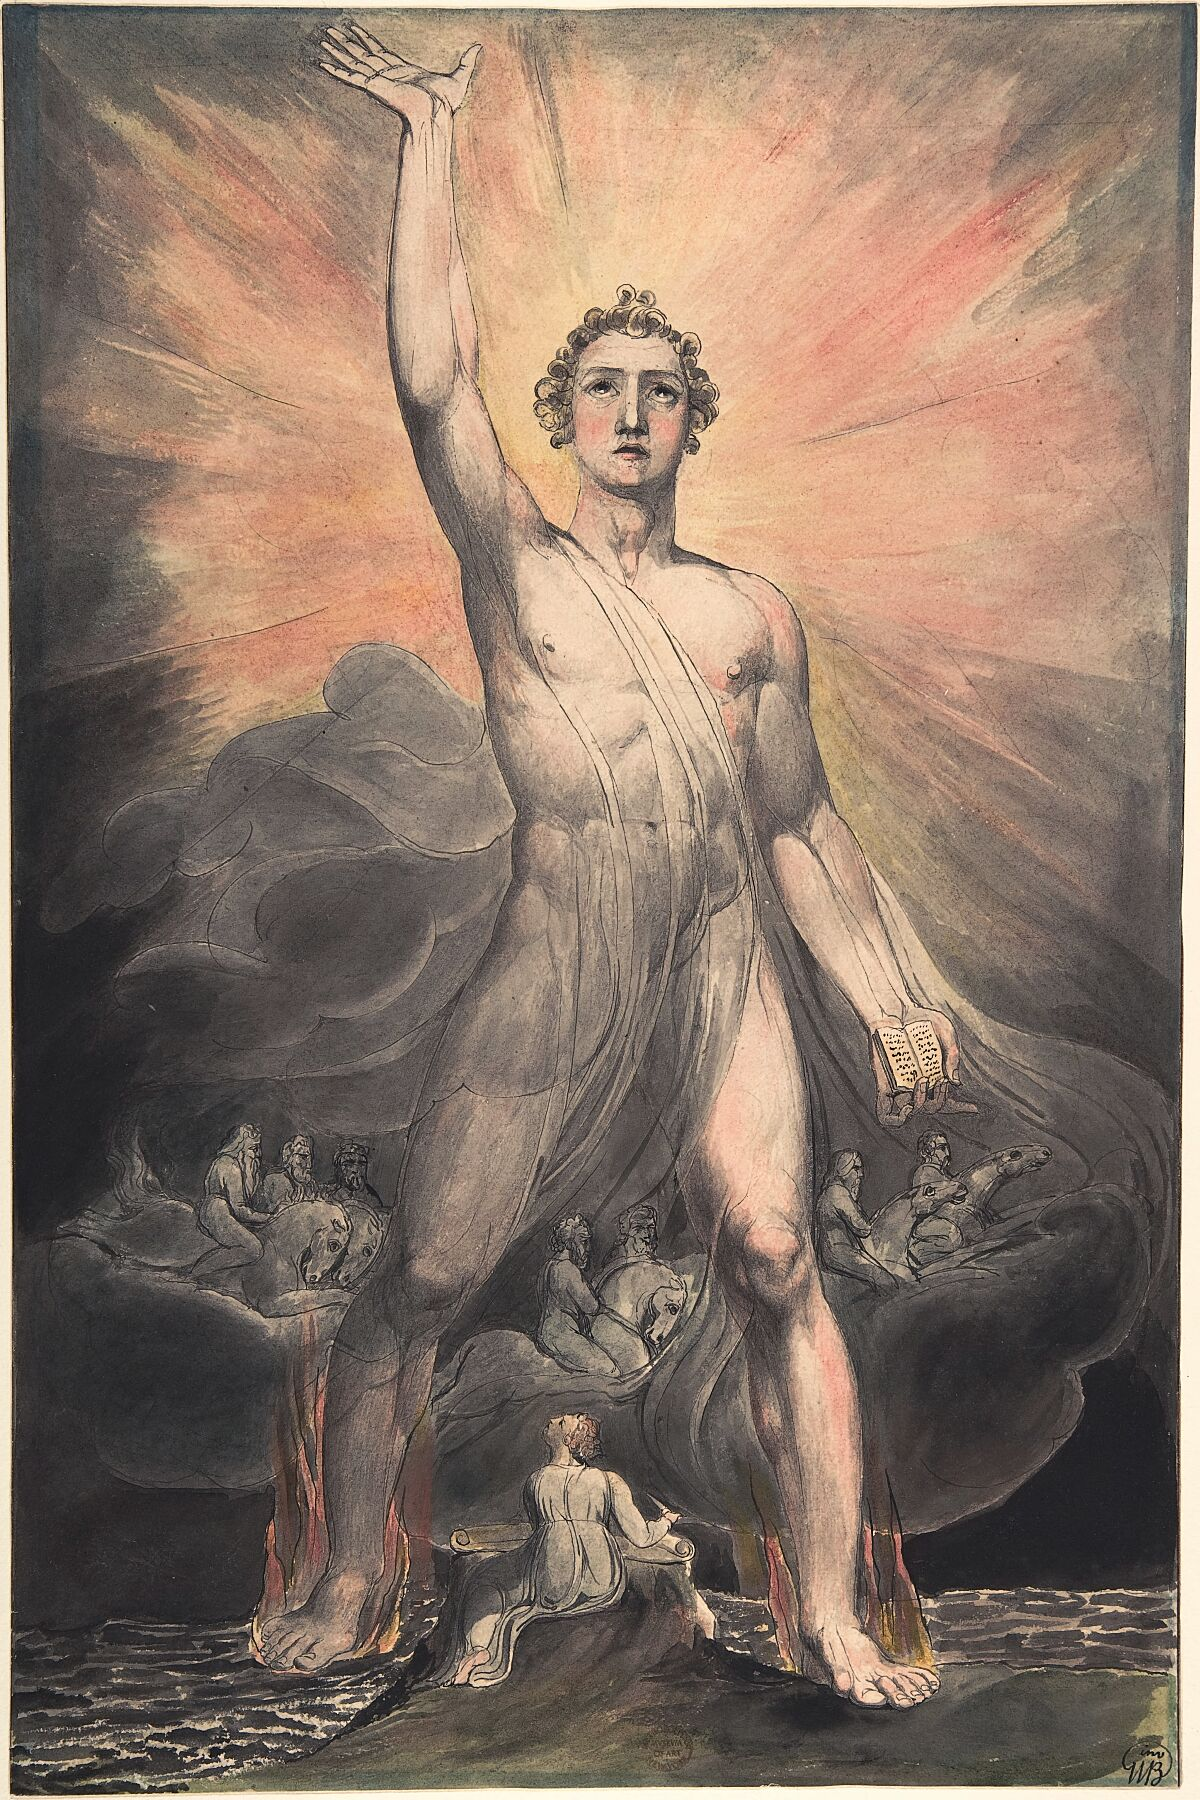 Angel of the Revelation (Book of Revelation, chapter 10) by William Blake - ca. 1803–5